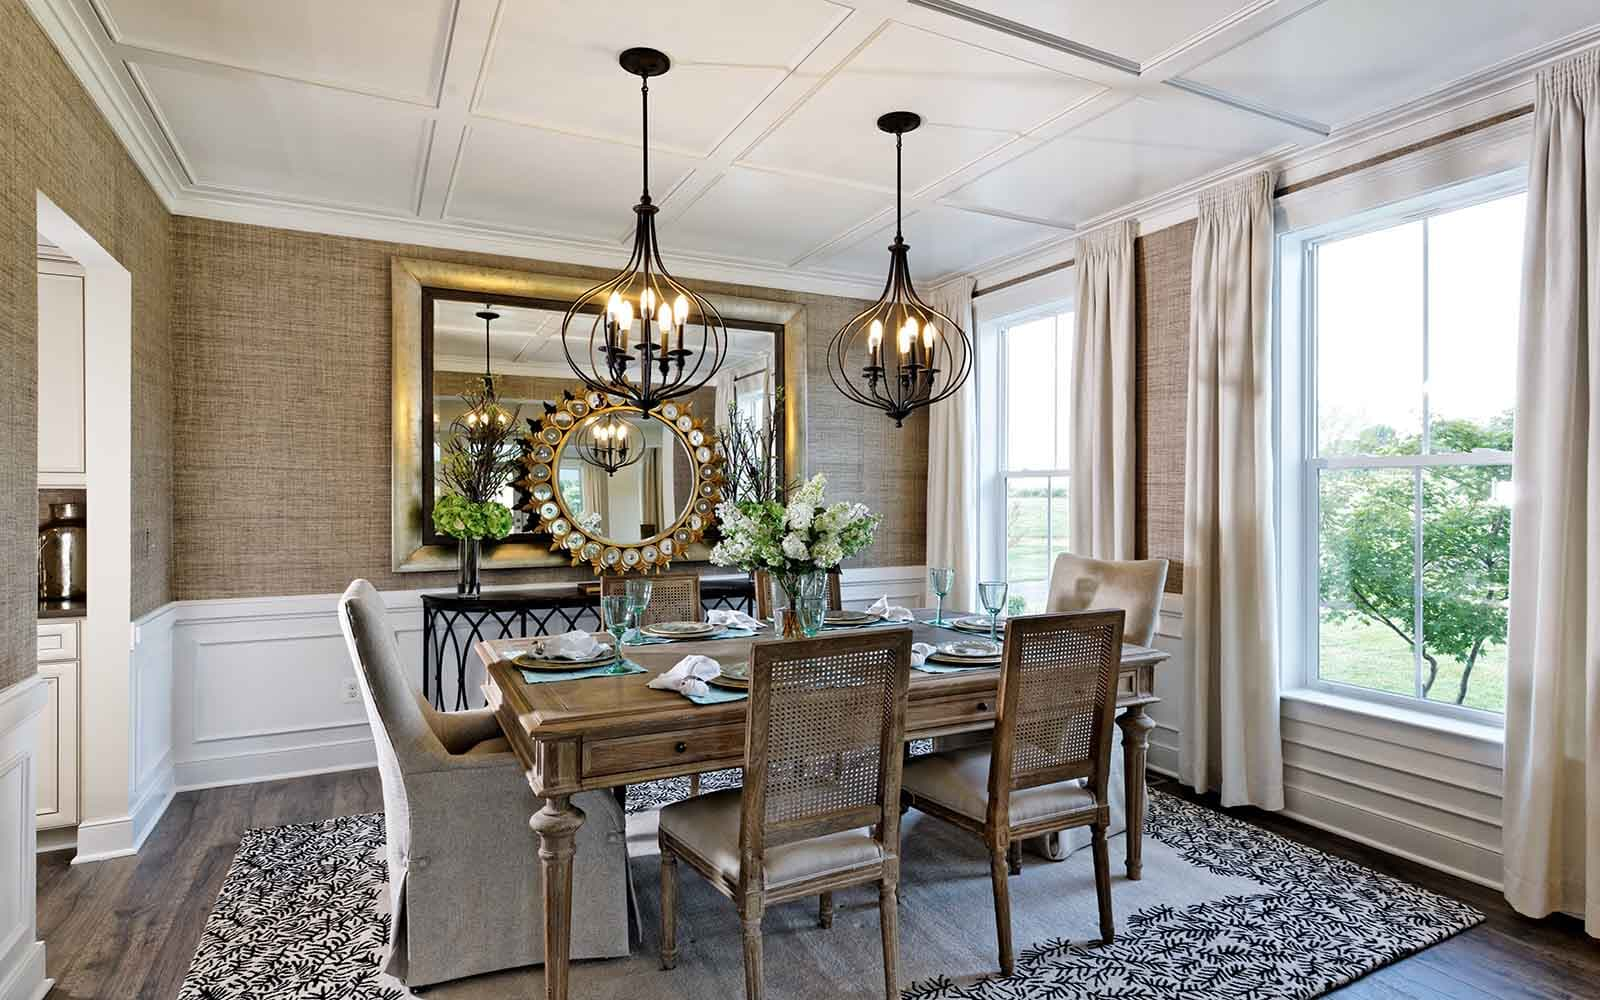 FillmoreII-dining-room2-single-family-home-leesburg-va-waterford-manor-brookfield-residential